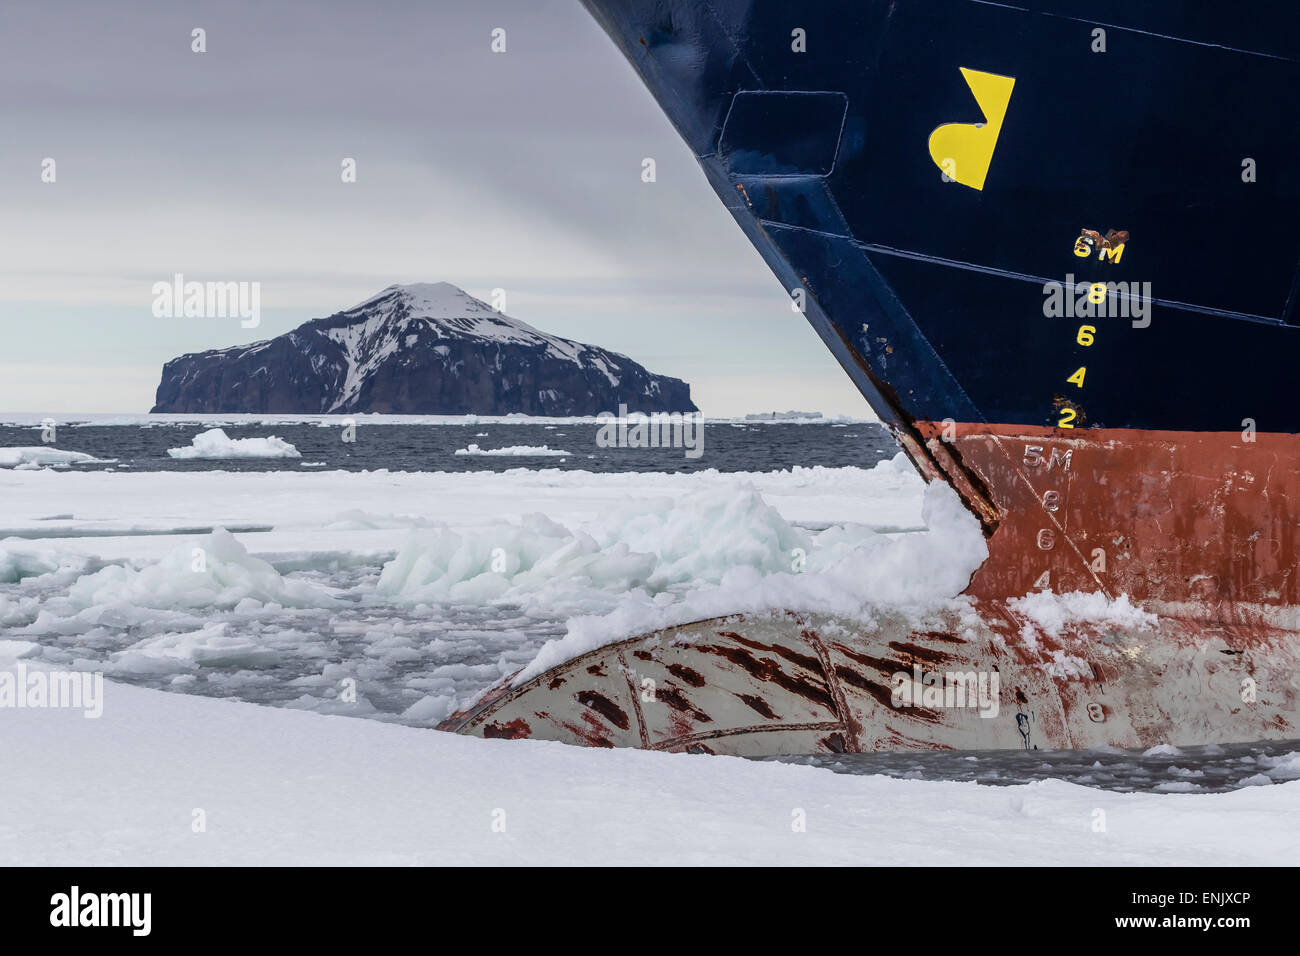 The Lindblad Expeditions ship National Geographic Explorer in Shorefast Ice, Antarctic Sound, Antarctica, Polar - Stock Image